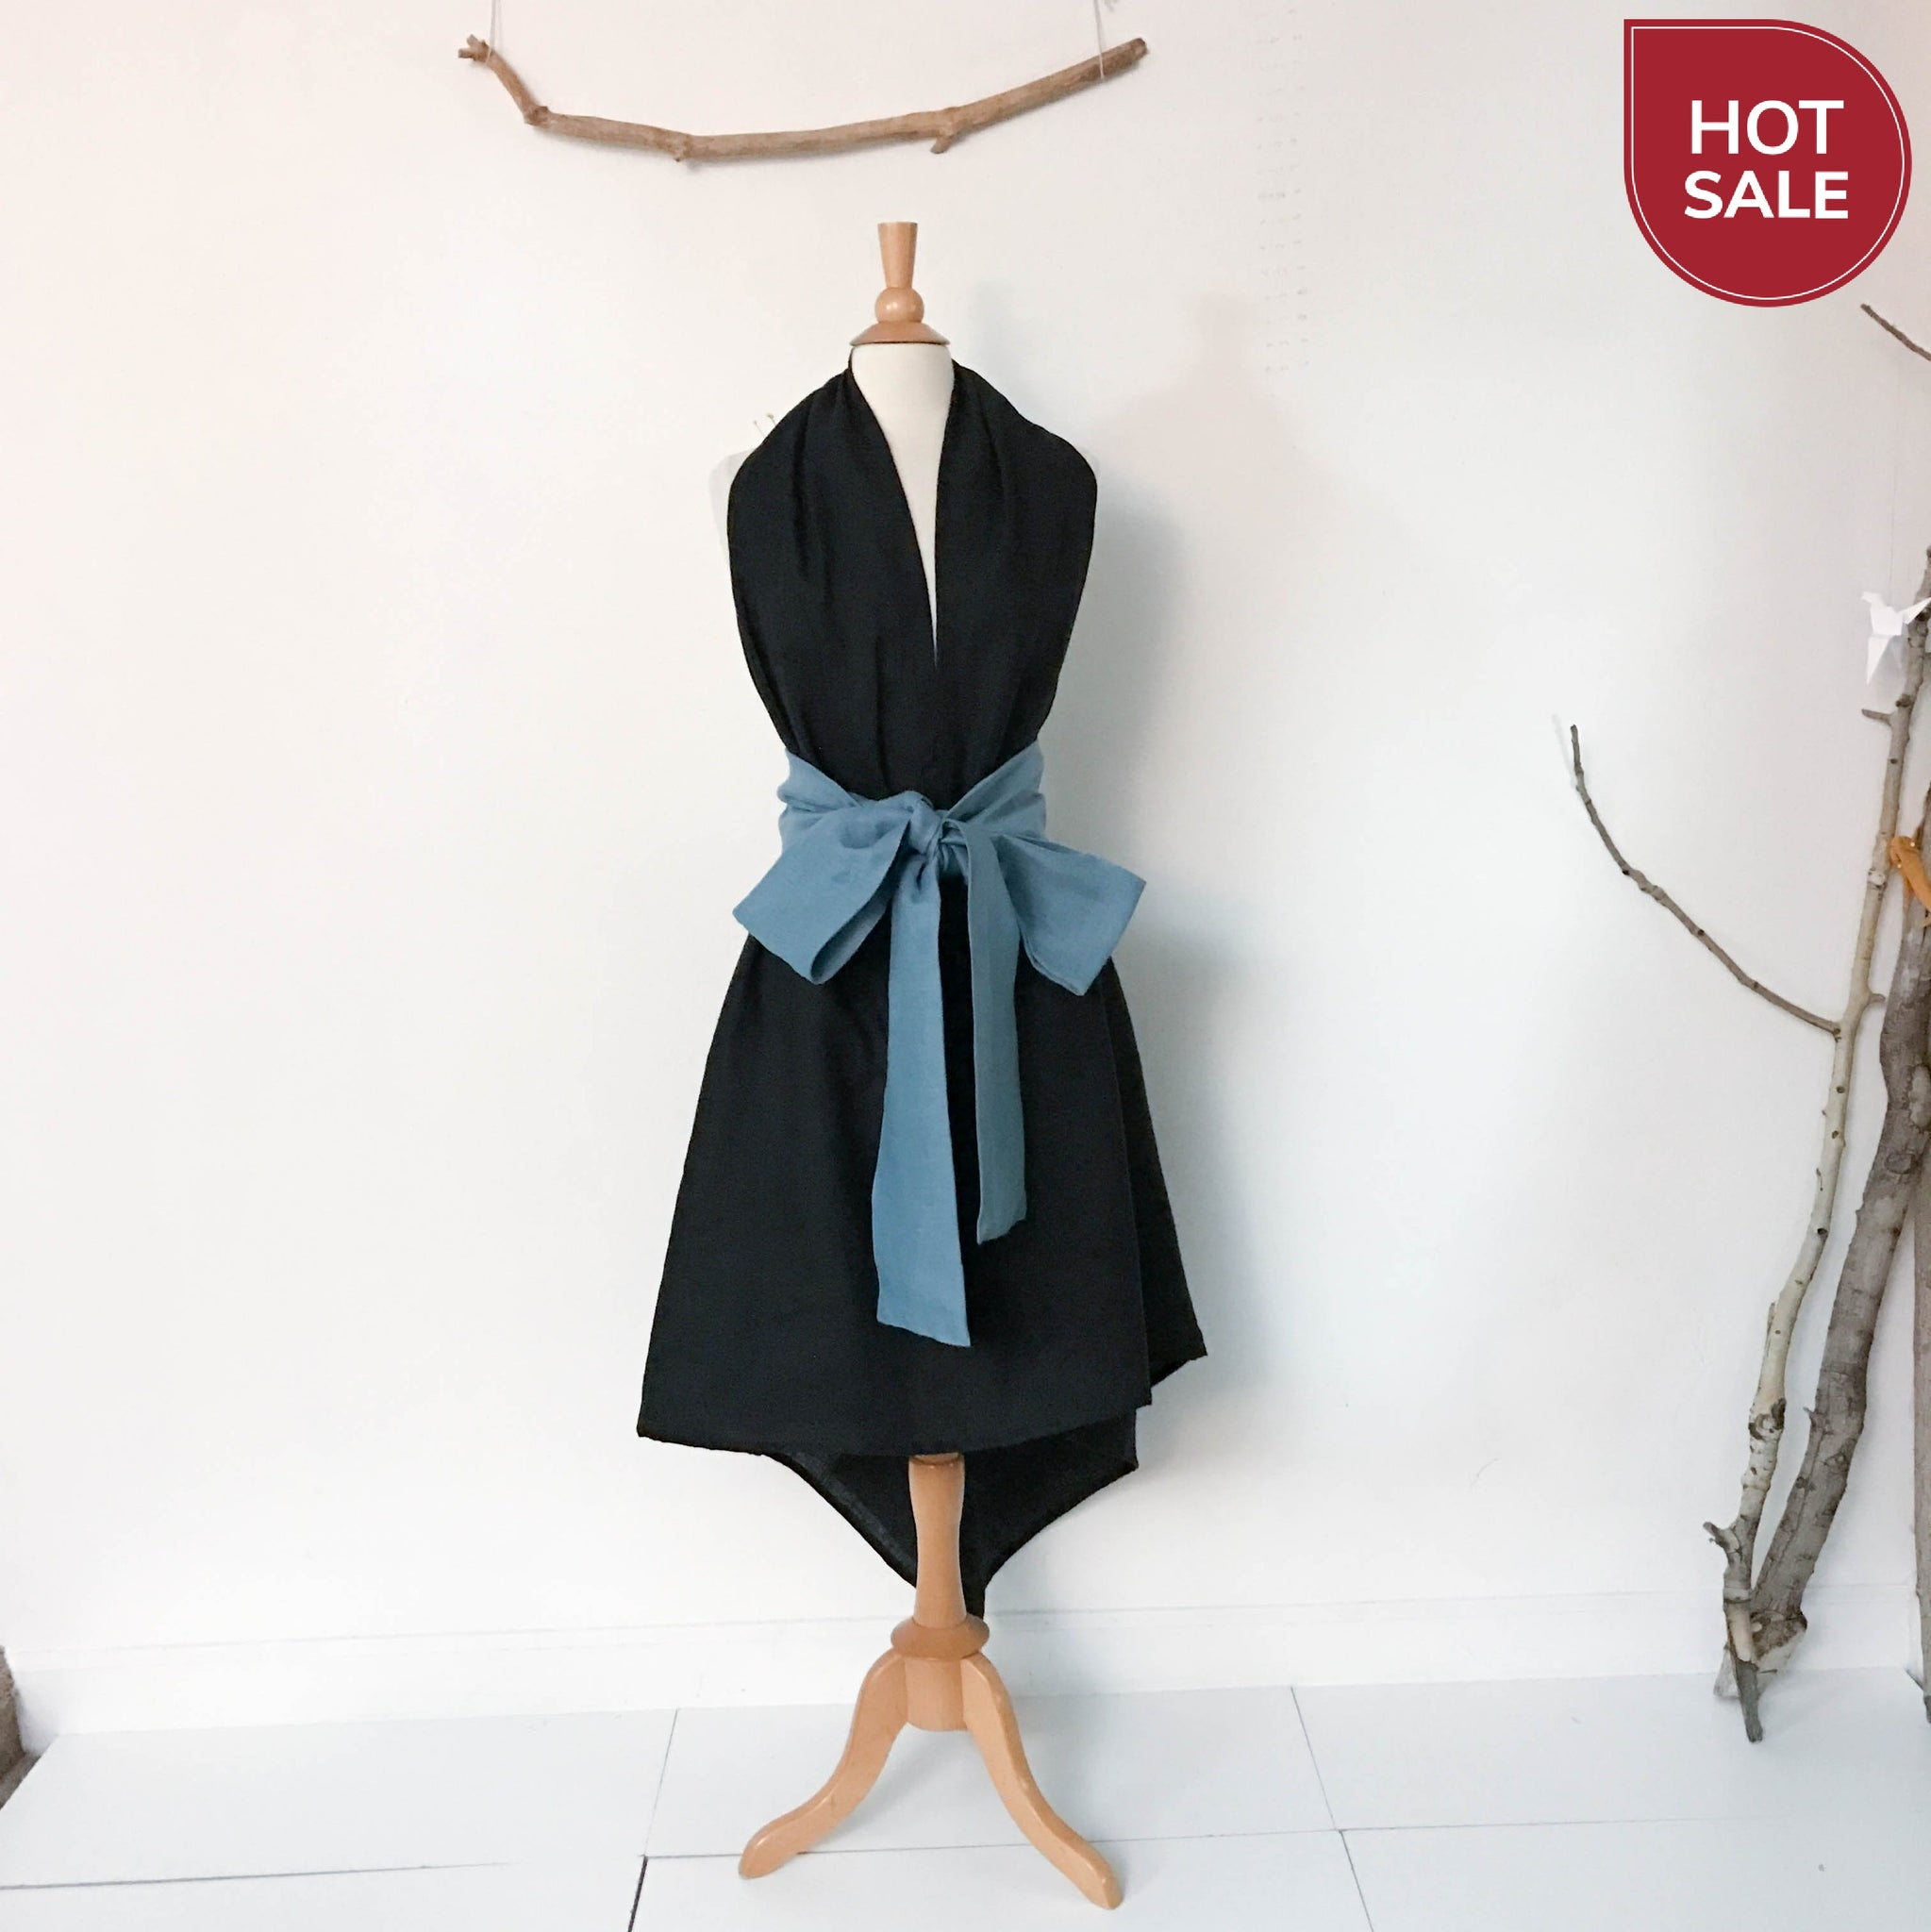 black linen low cut halter dress with sky blue obi sashes ready to wear - linen clothing by anny